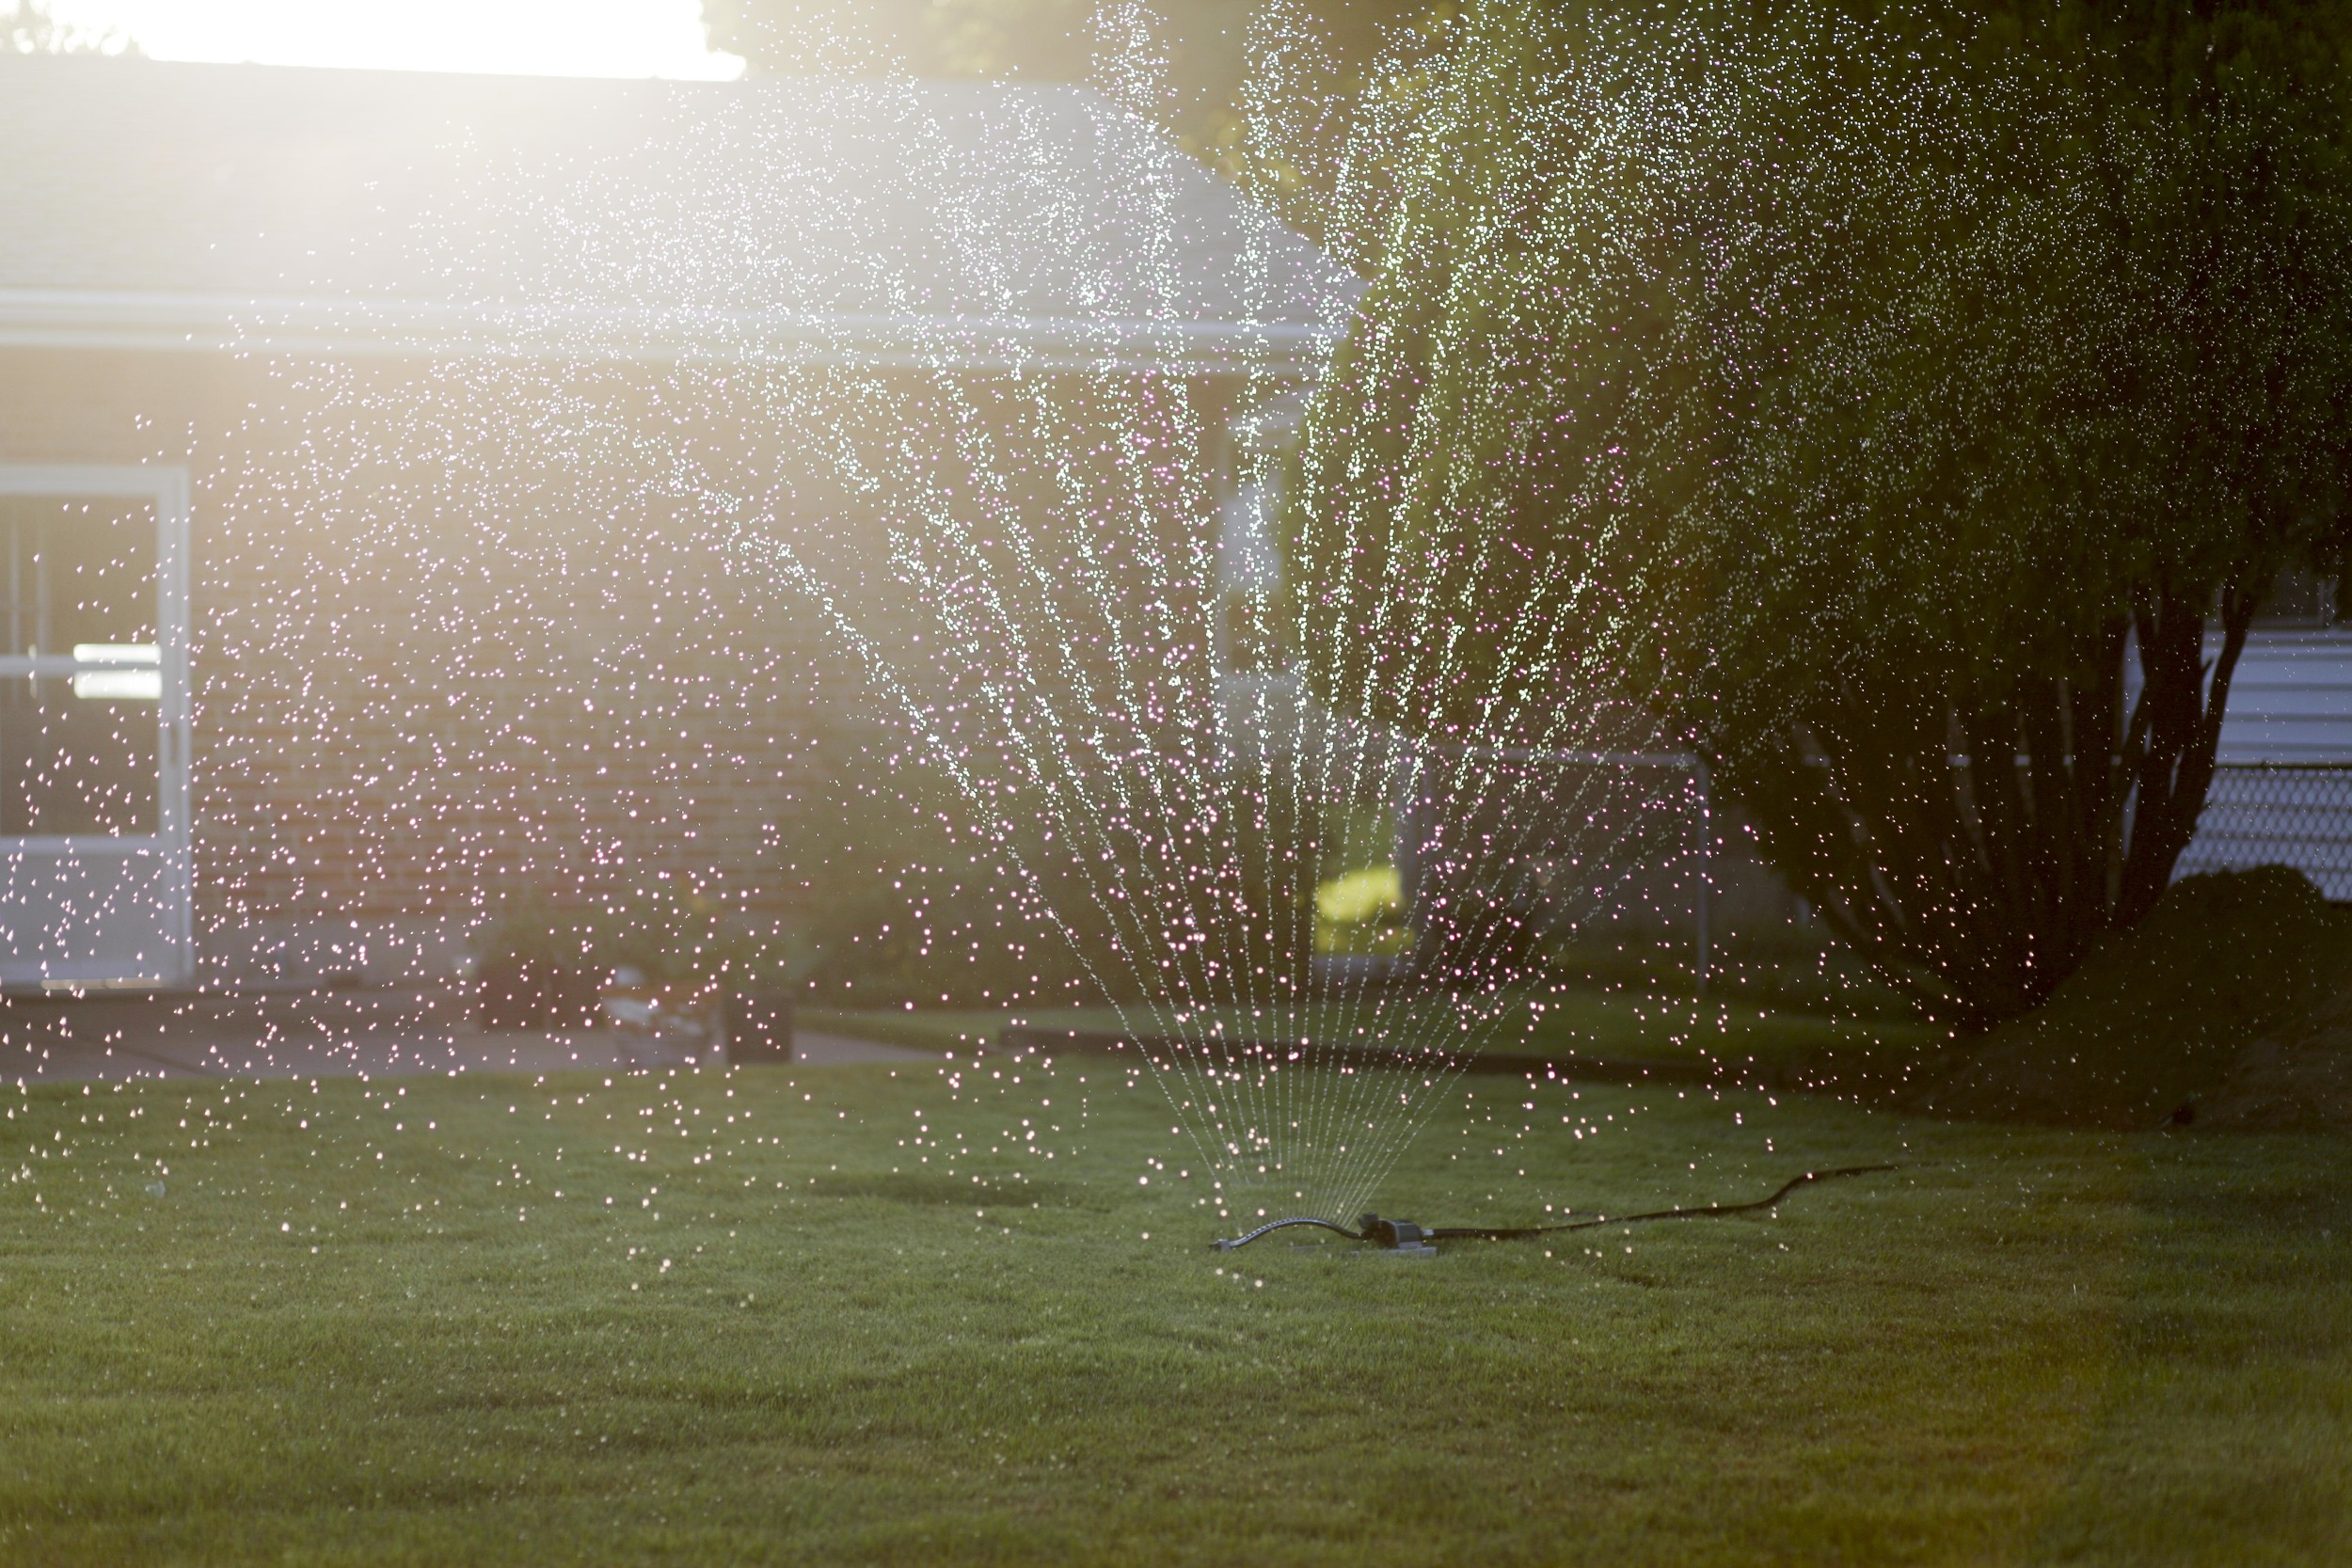 A sprinkler waters a backyard lawn that abuts W. Florissant Ave., where protests have taken place nightly August 20, 2014 in Ferguson, MO.